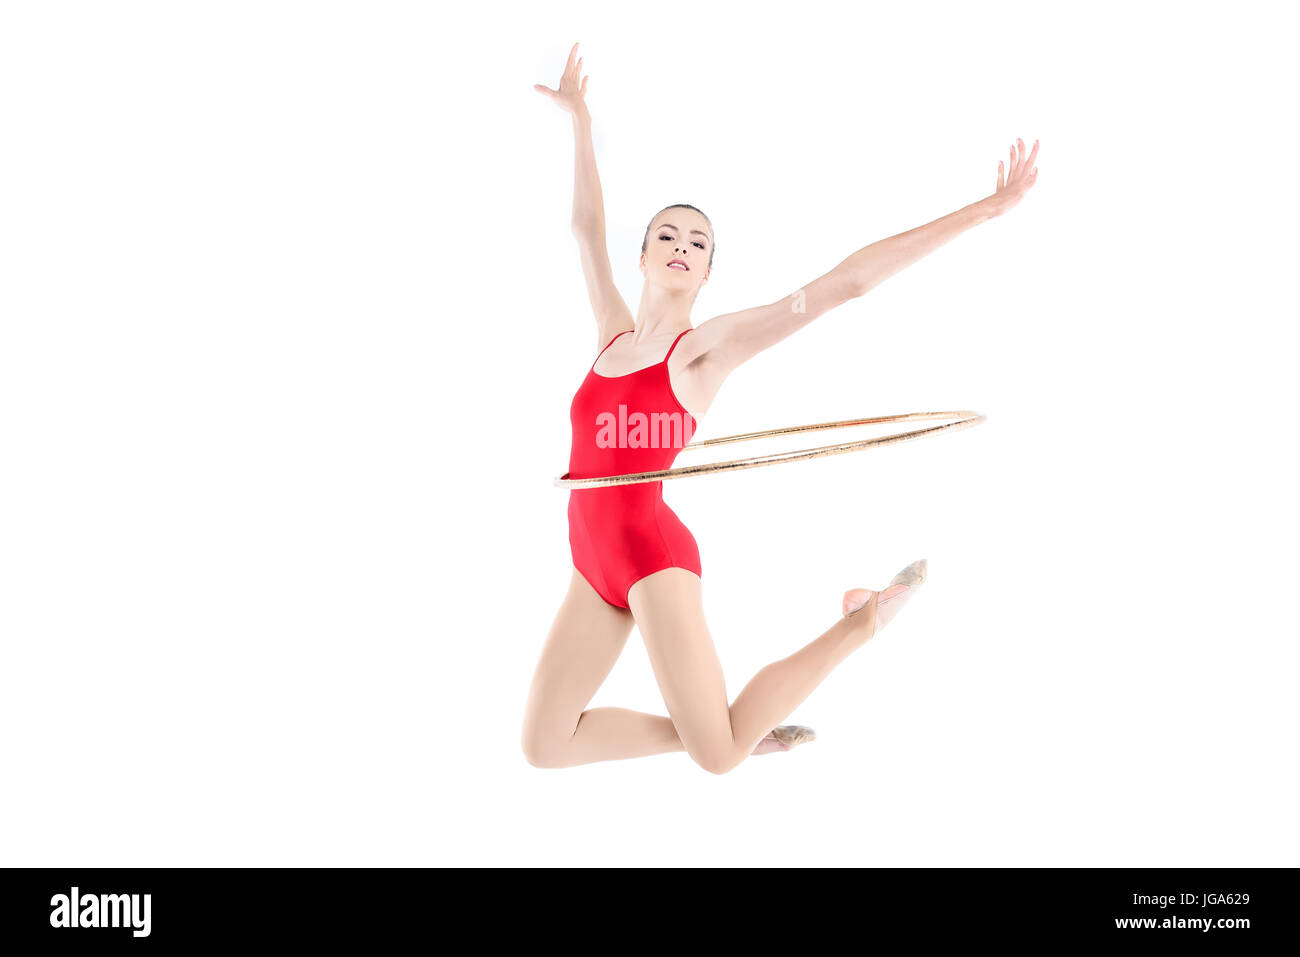 Formation gymnastique rythmique sportive avec hoop sur taille isolated on  white Photo Stock 30d16c571a9